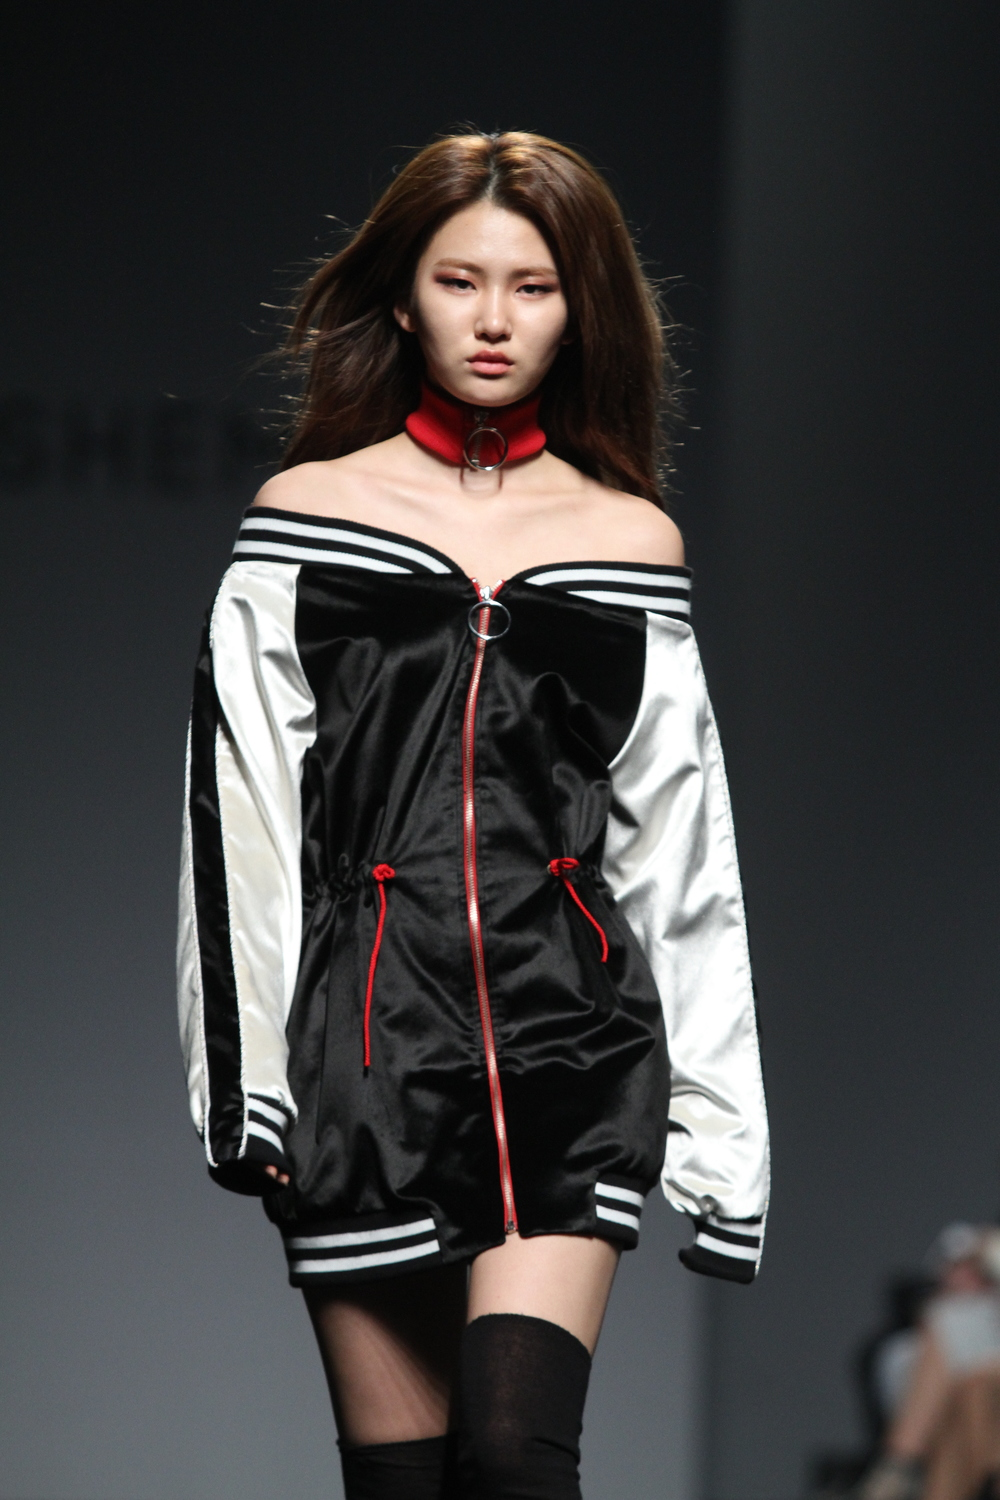 The Shemiste show from this past Seoul Fashion Week FW 2016 was rocking both the baseball jacket and sukajan style, with the long sleeve thing going on these days, a thing that is bouncing around the Seoul street as well. Love how they made this jacket a mini-dress.